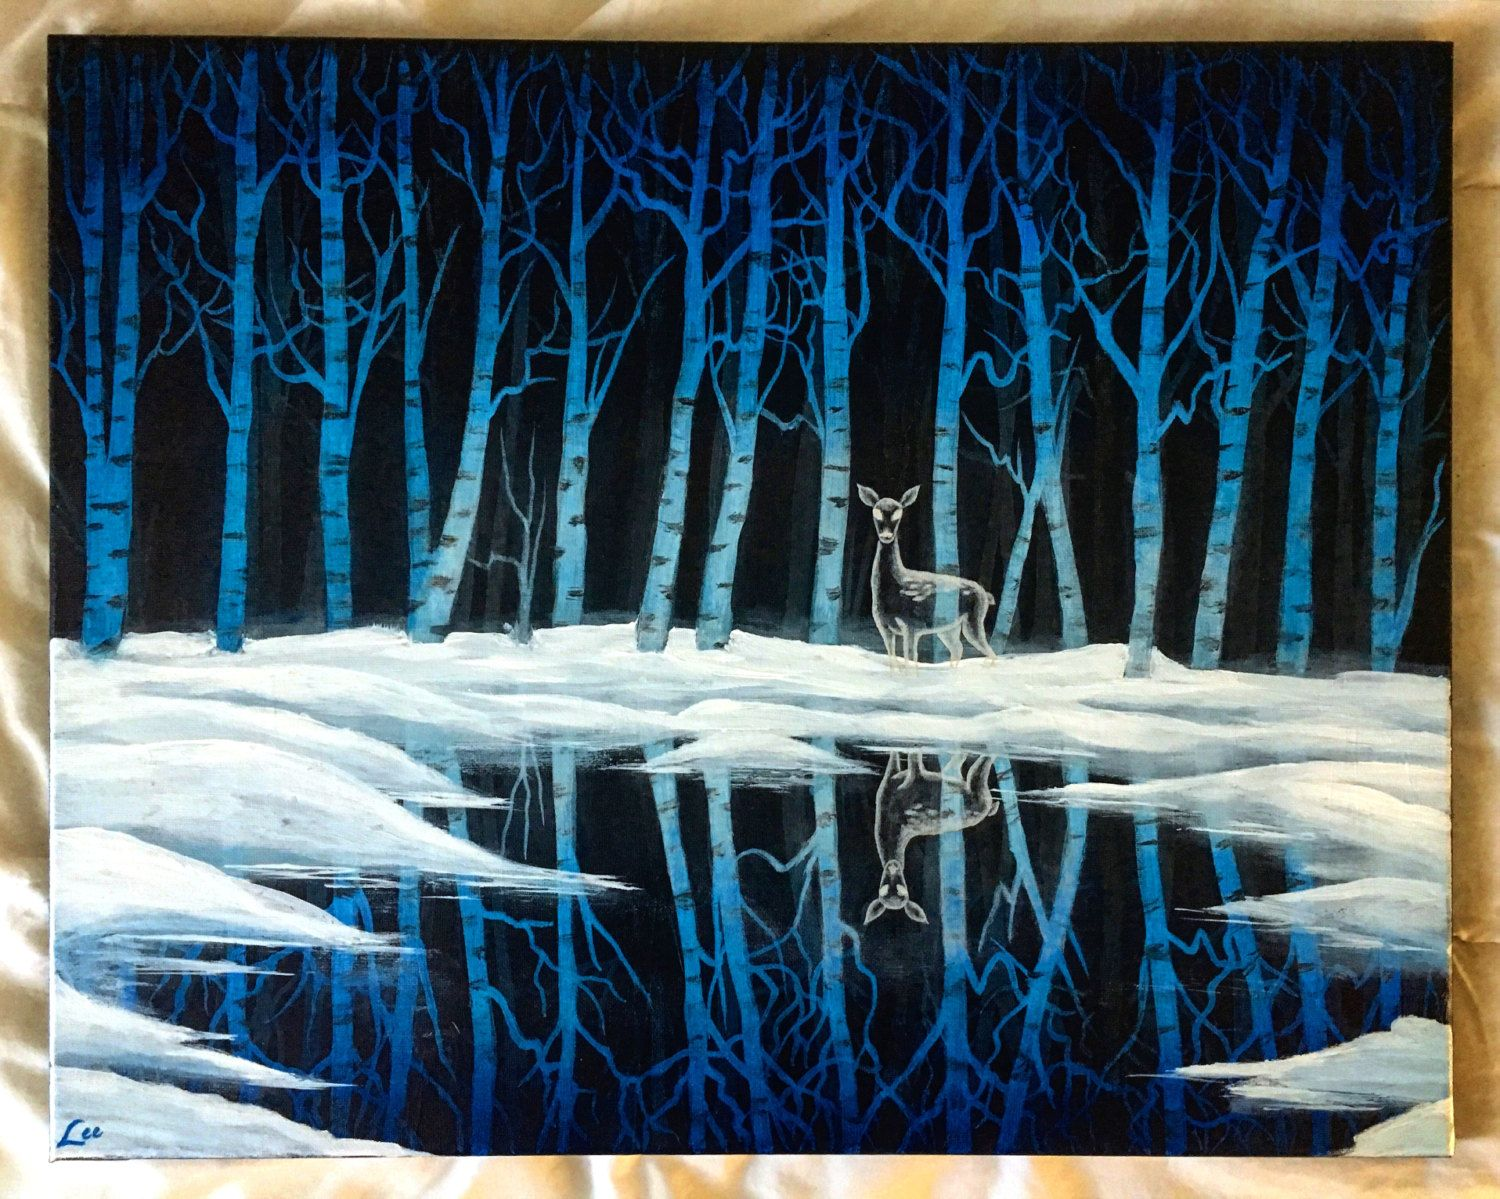 The Forest of Dean Acrylic on canvas, 2016 20 x 16 No 9 in a series  Based on Snow Birch by Bob Ross, Joy of Painting Season 26, Ep 7. Ive added Professor Snapes Doe Patronus. This represents the scene in Harry Potter and The Deathly Hallows when Snapes Doe Patronus leads Harry to the frozen lake that contains the Godric Gryffindors Sword.  And then the source of the light stepped out from behind an oak. It was a silver white doe, moon-bright and dazzling, picking her way over the ground…